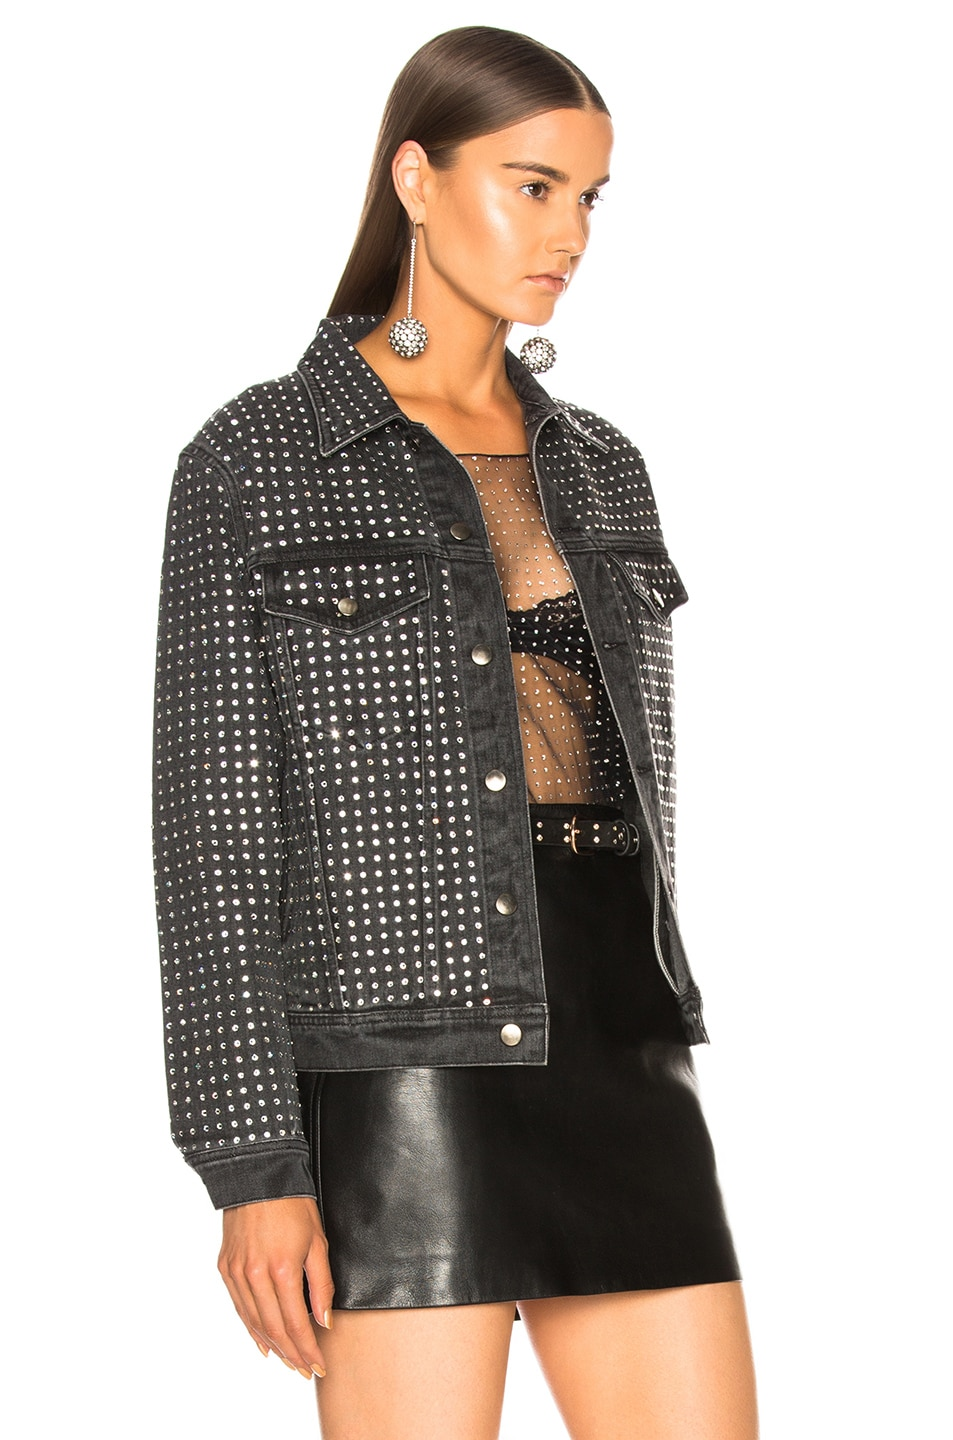 Image 2 of Ashish Jacket in Charcoal Black